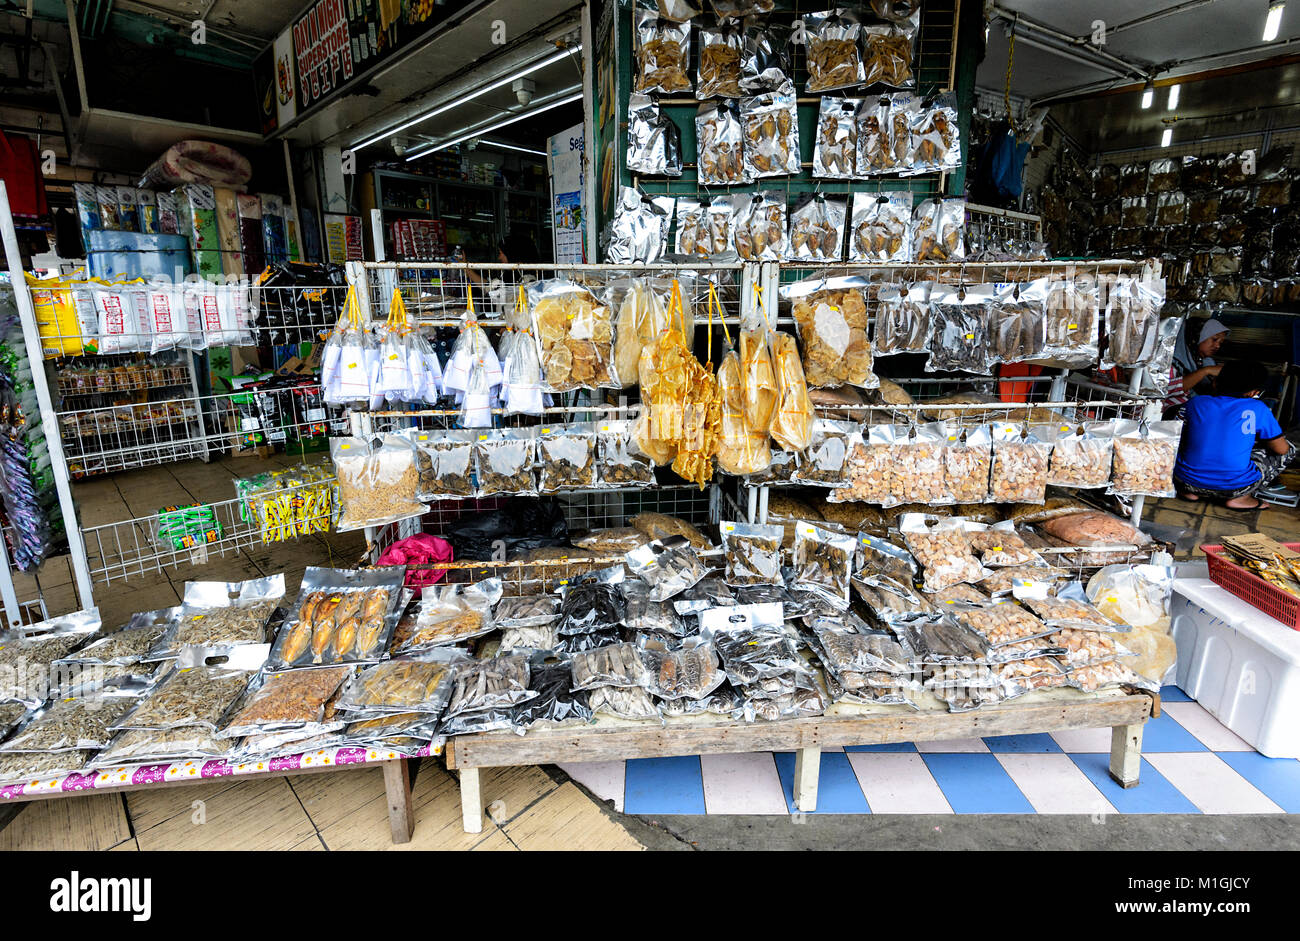 Stall selling dried fish at the market in town centre, Kota Kinabalu, Sabah, Borneo, Malaysia - Stock Image